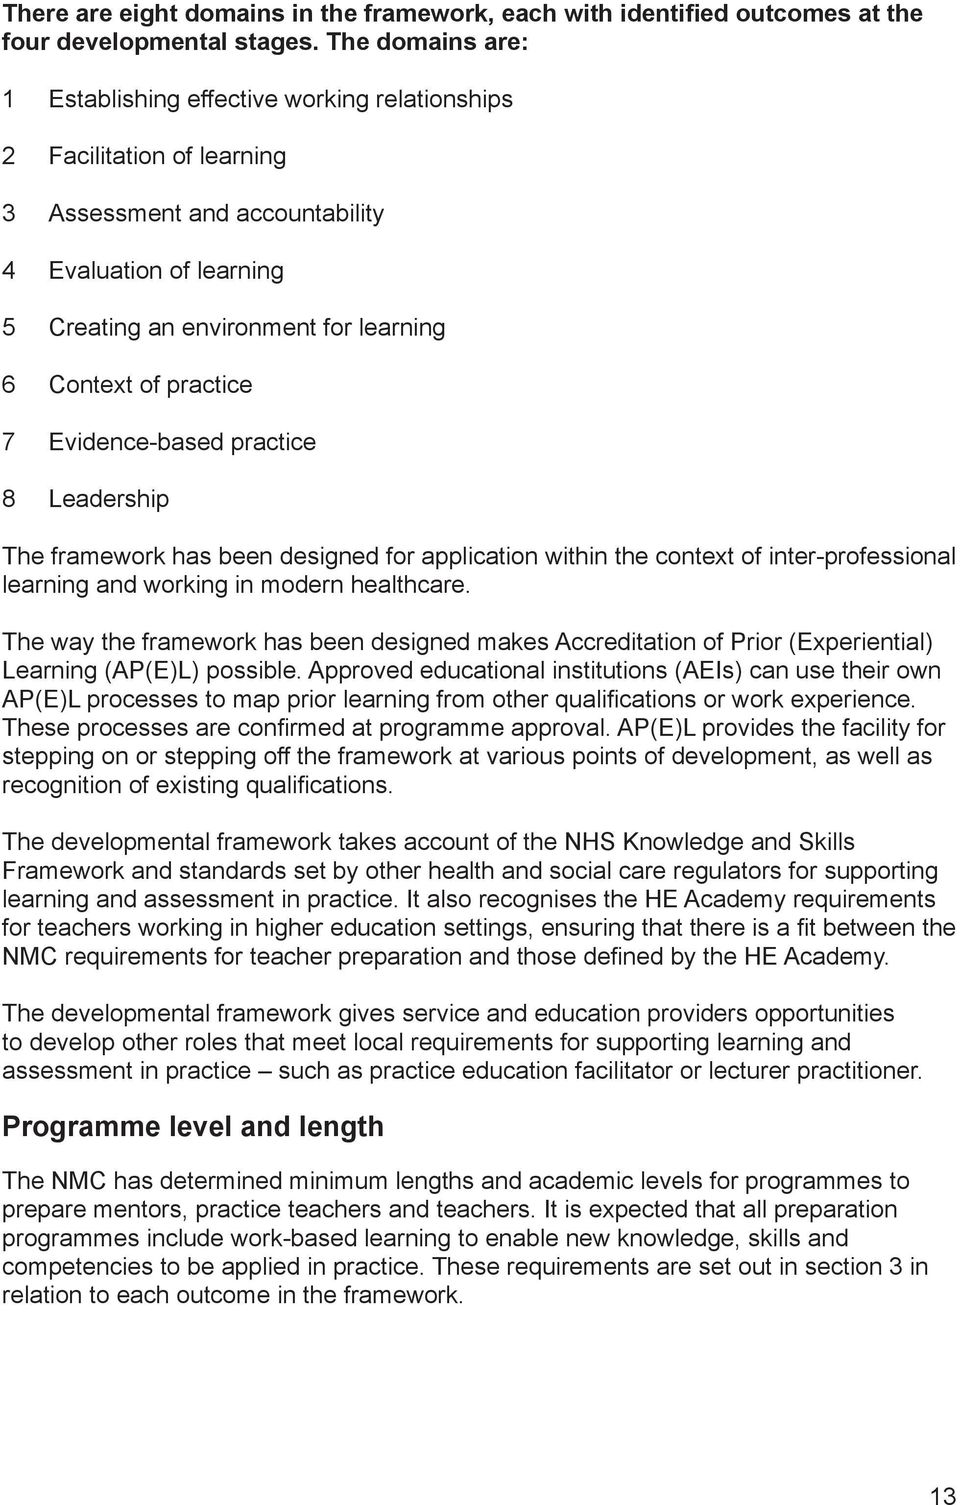 practice 7 Evidence-based practice 8 Leadership The framework has been designed for application within the context of inter-professional learning and working in modern healthcare.